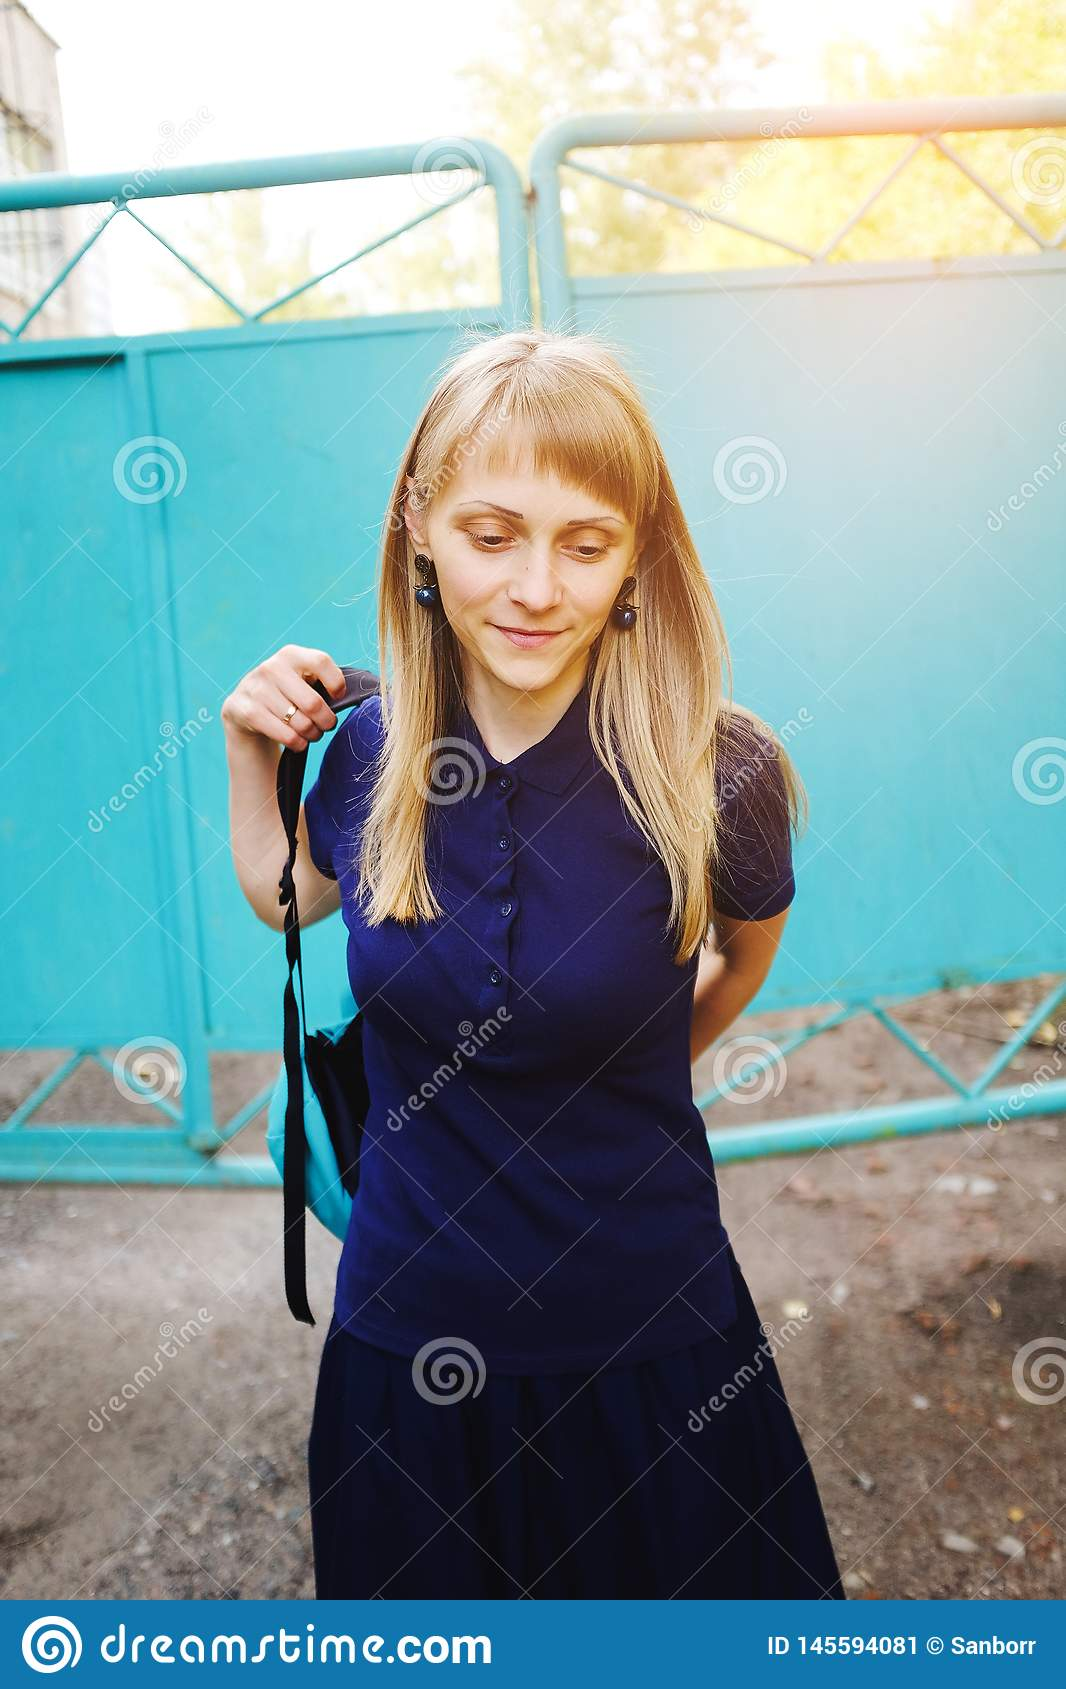 A girl with blond hair, wearing a blue Polo shirt. A young woman, looking down, puts on a backpack against the iron gate.